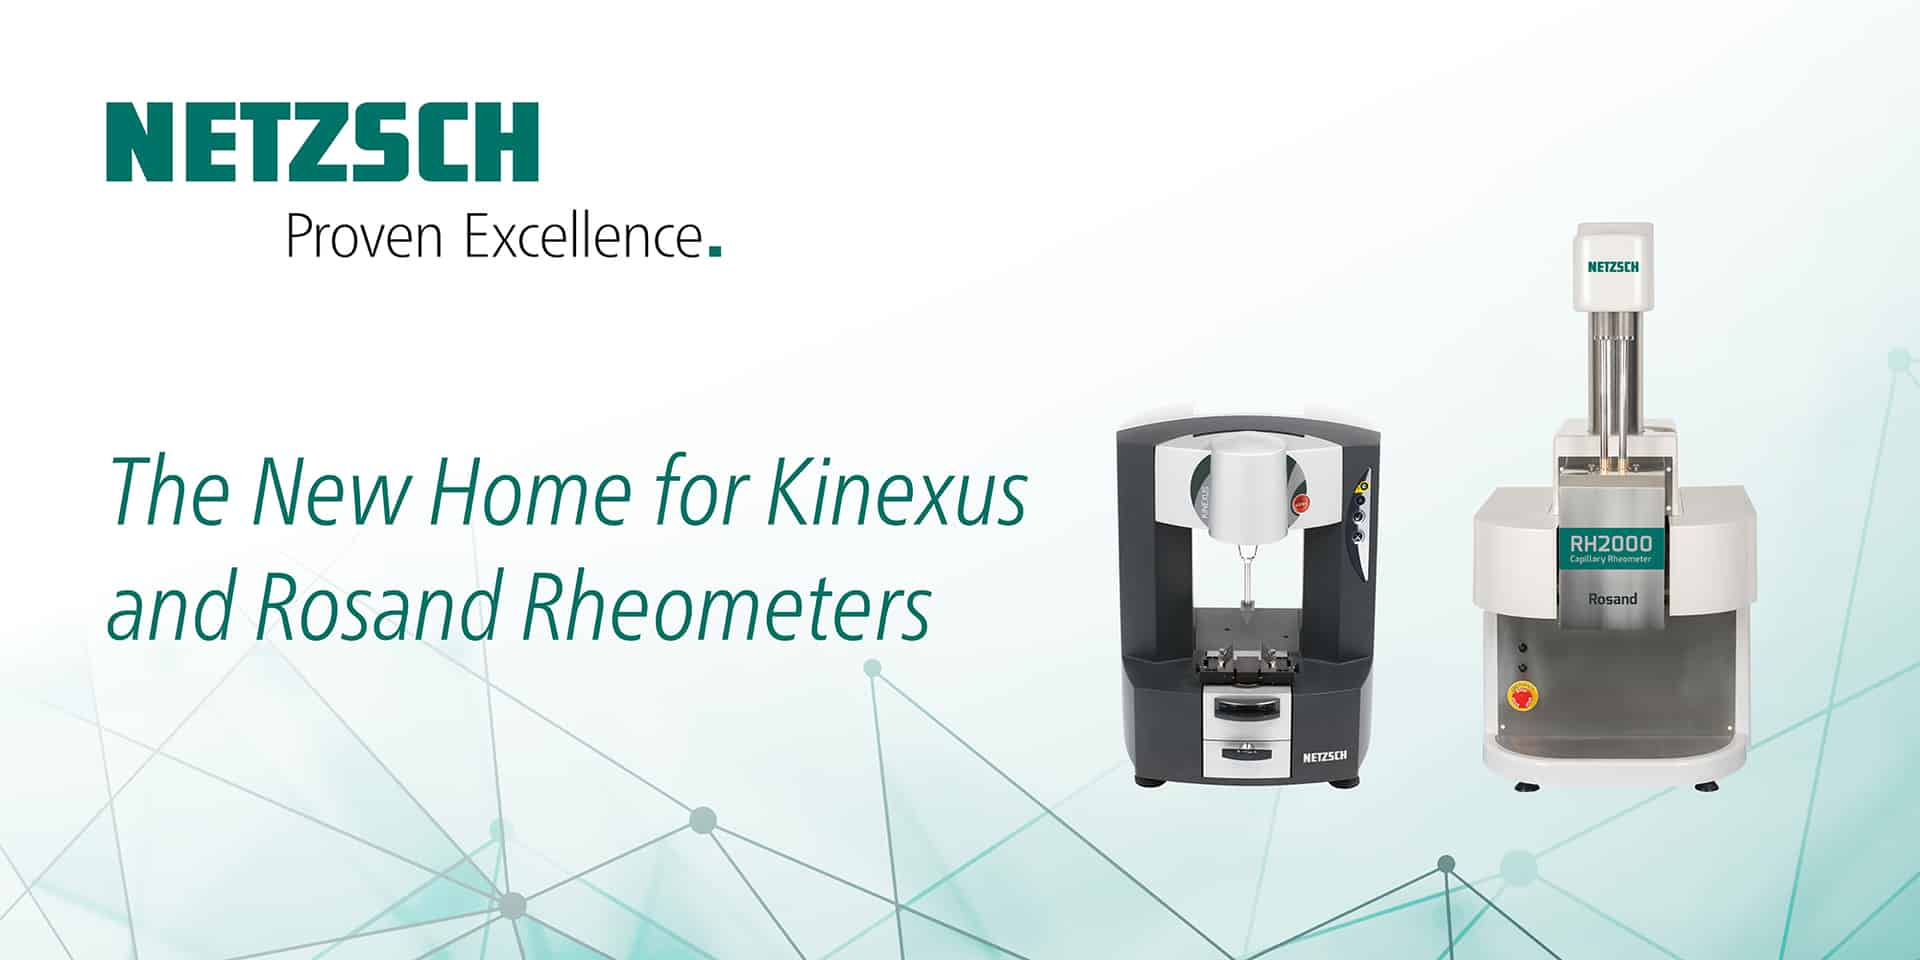 The New Home for Kinexus and Rosand Rheometers